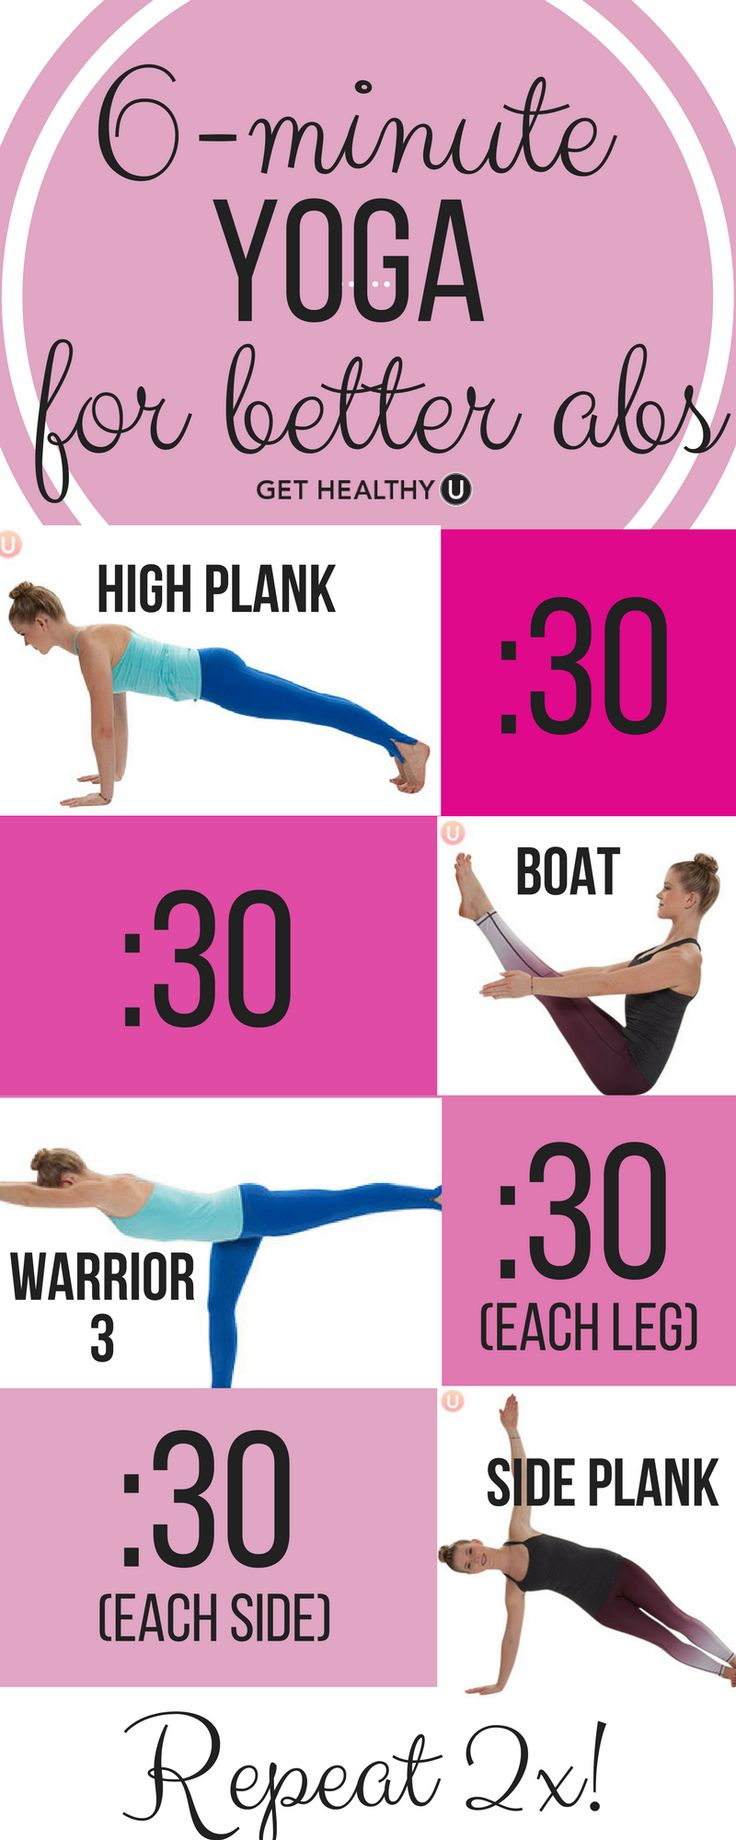 Did you know that yoga can also land you a strong core and enviable abs? We've...